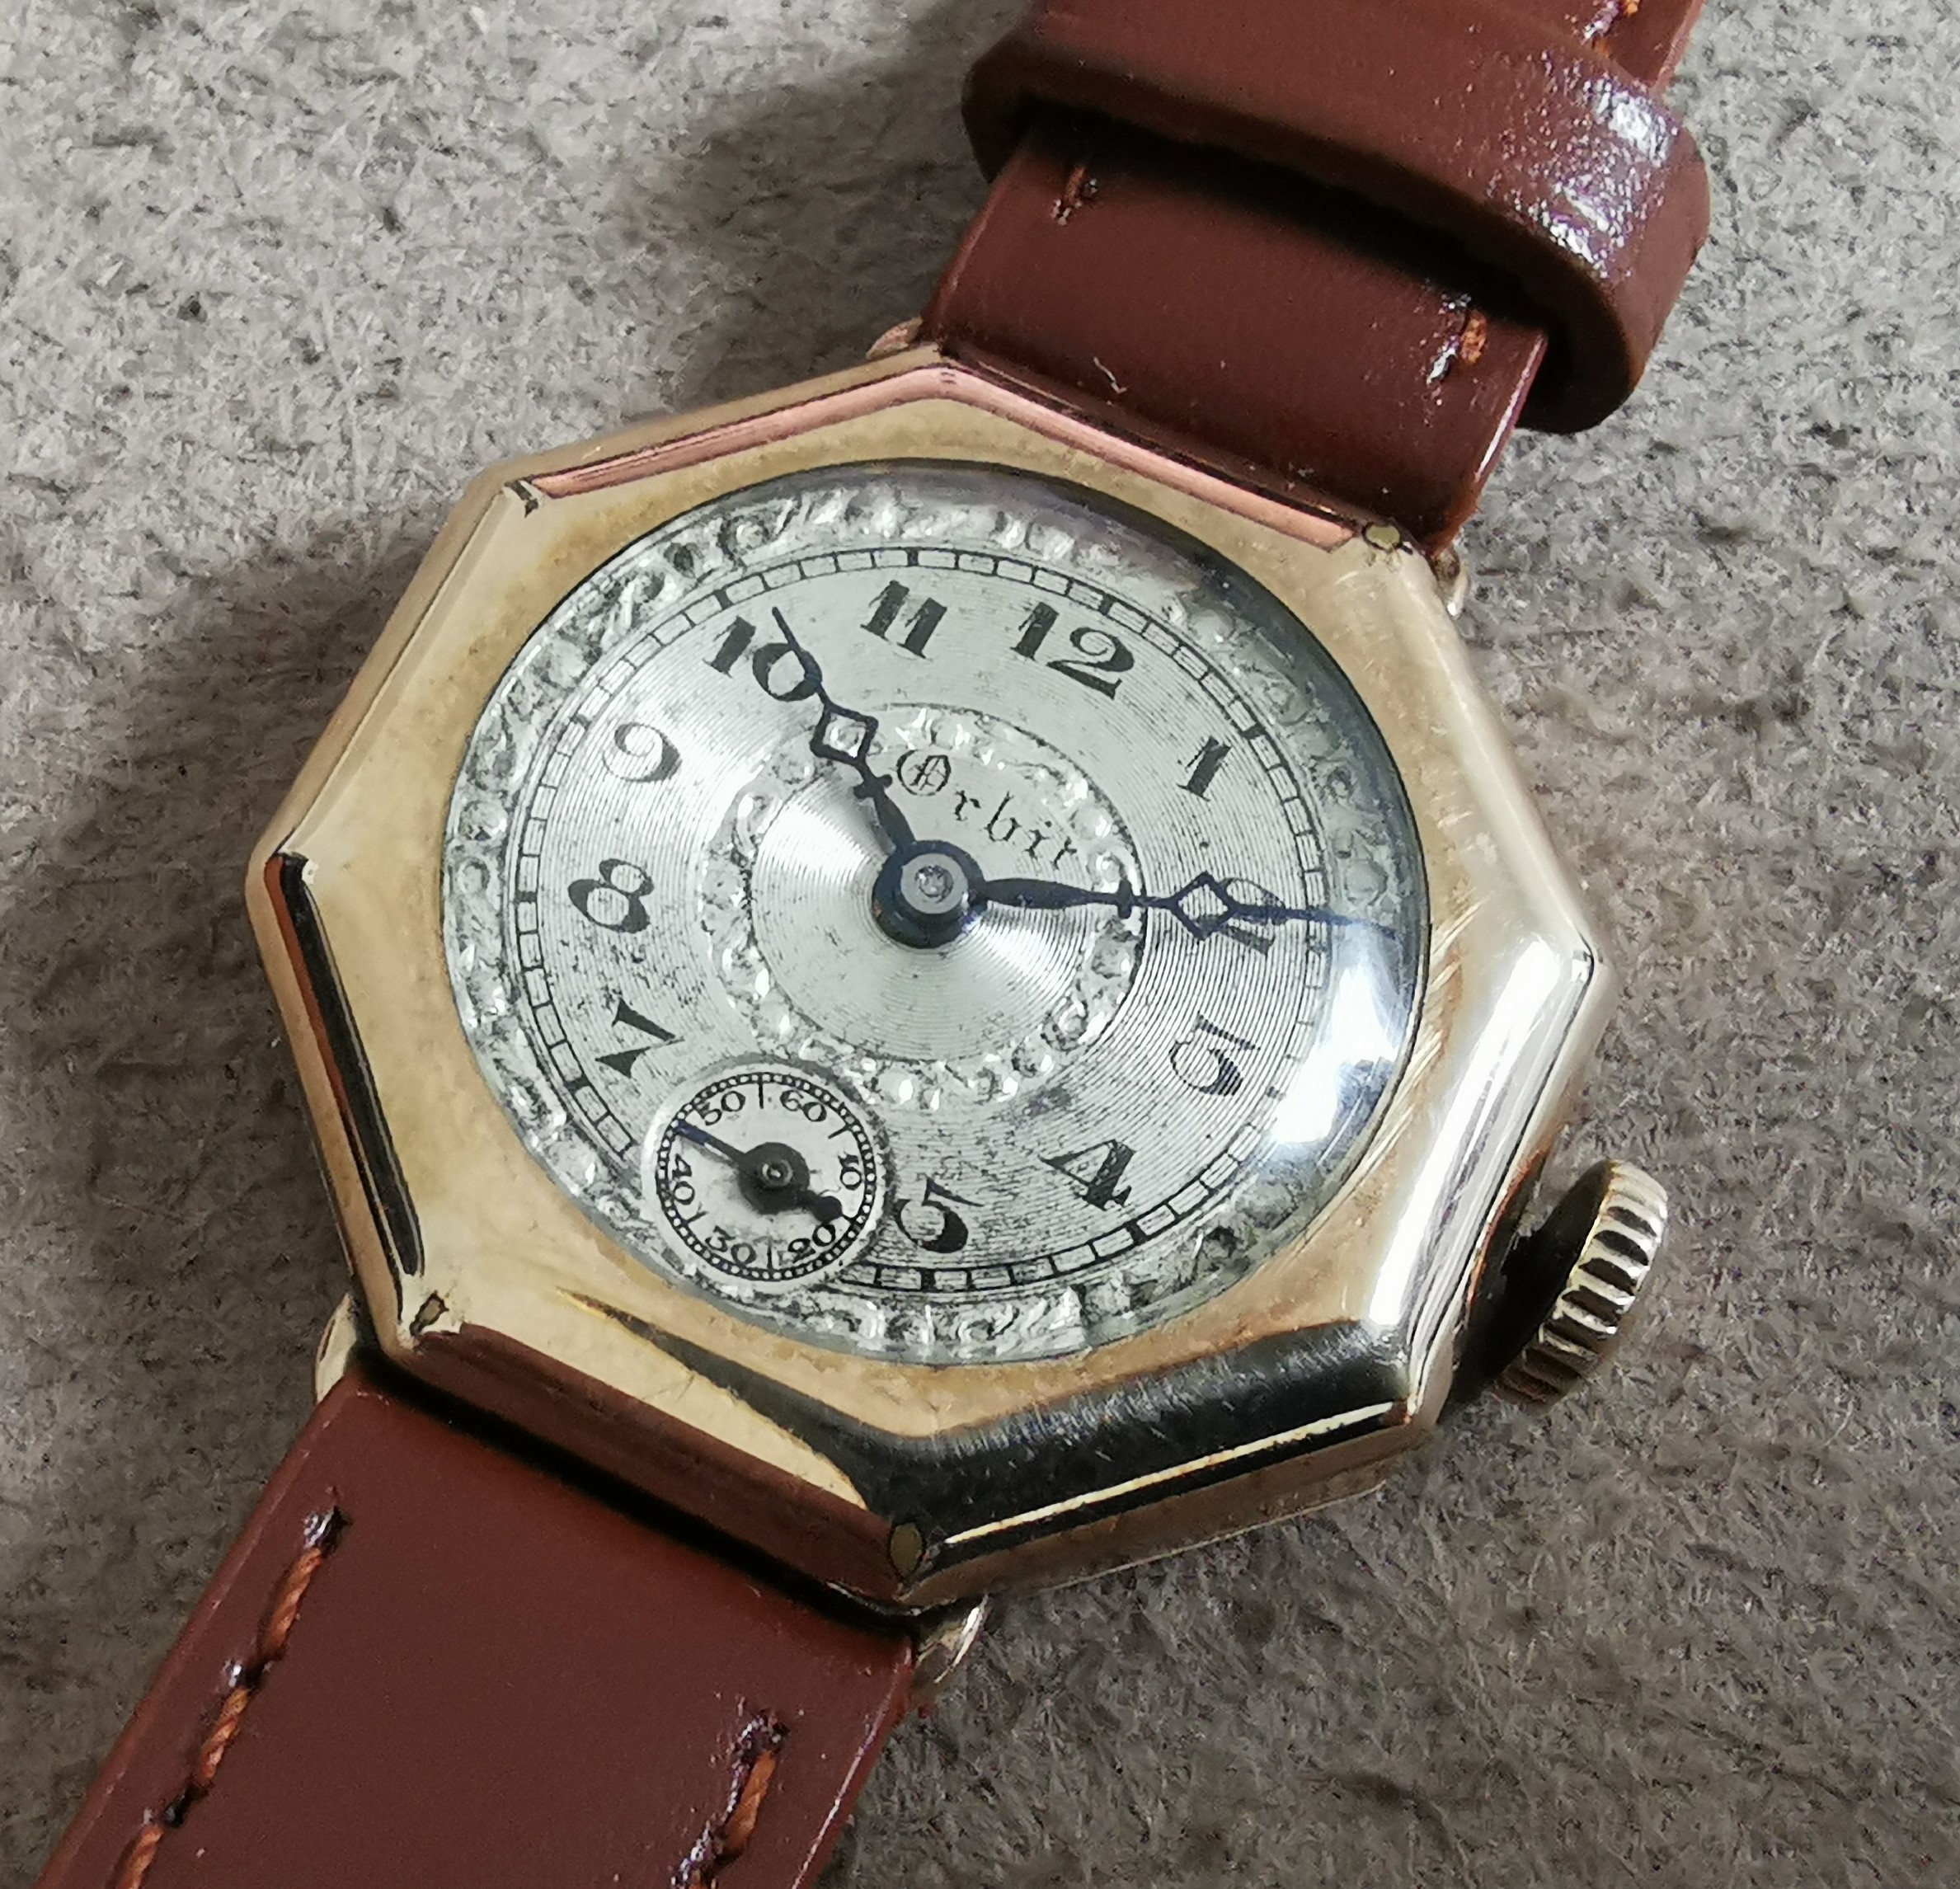 Anonimo Orbit Old lady octagonal 10 kt gold filled case silver dial manual wind 6 jewels | San Giorgio a Cremano